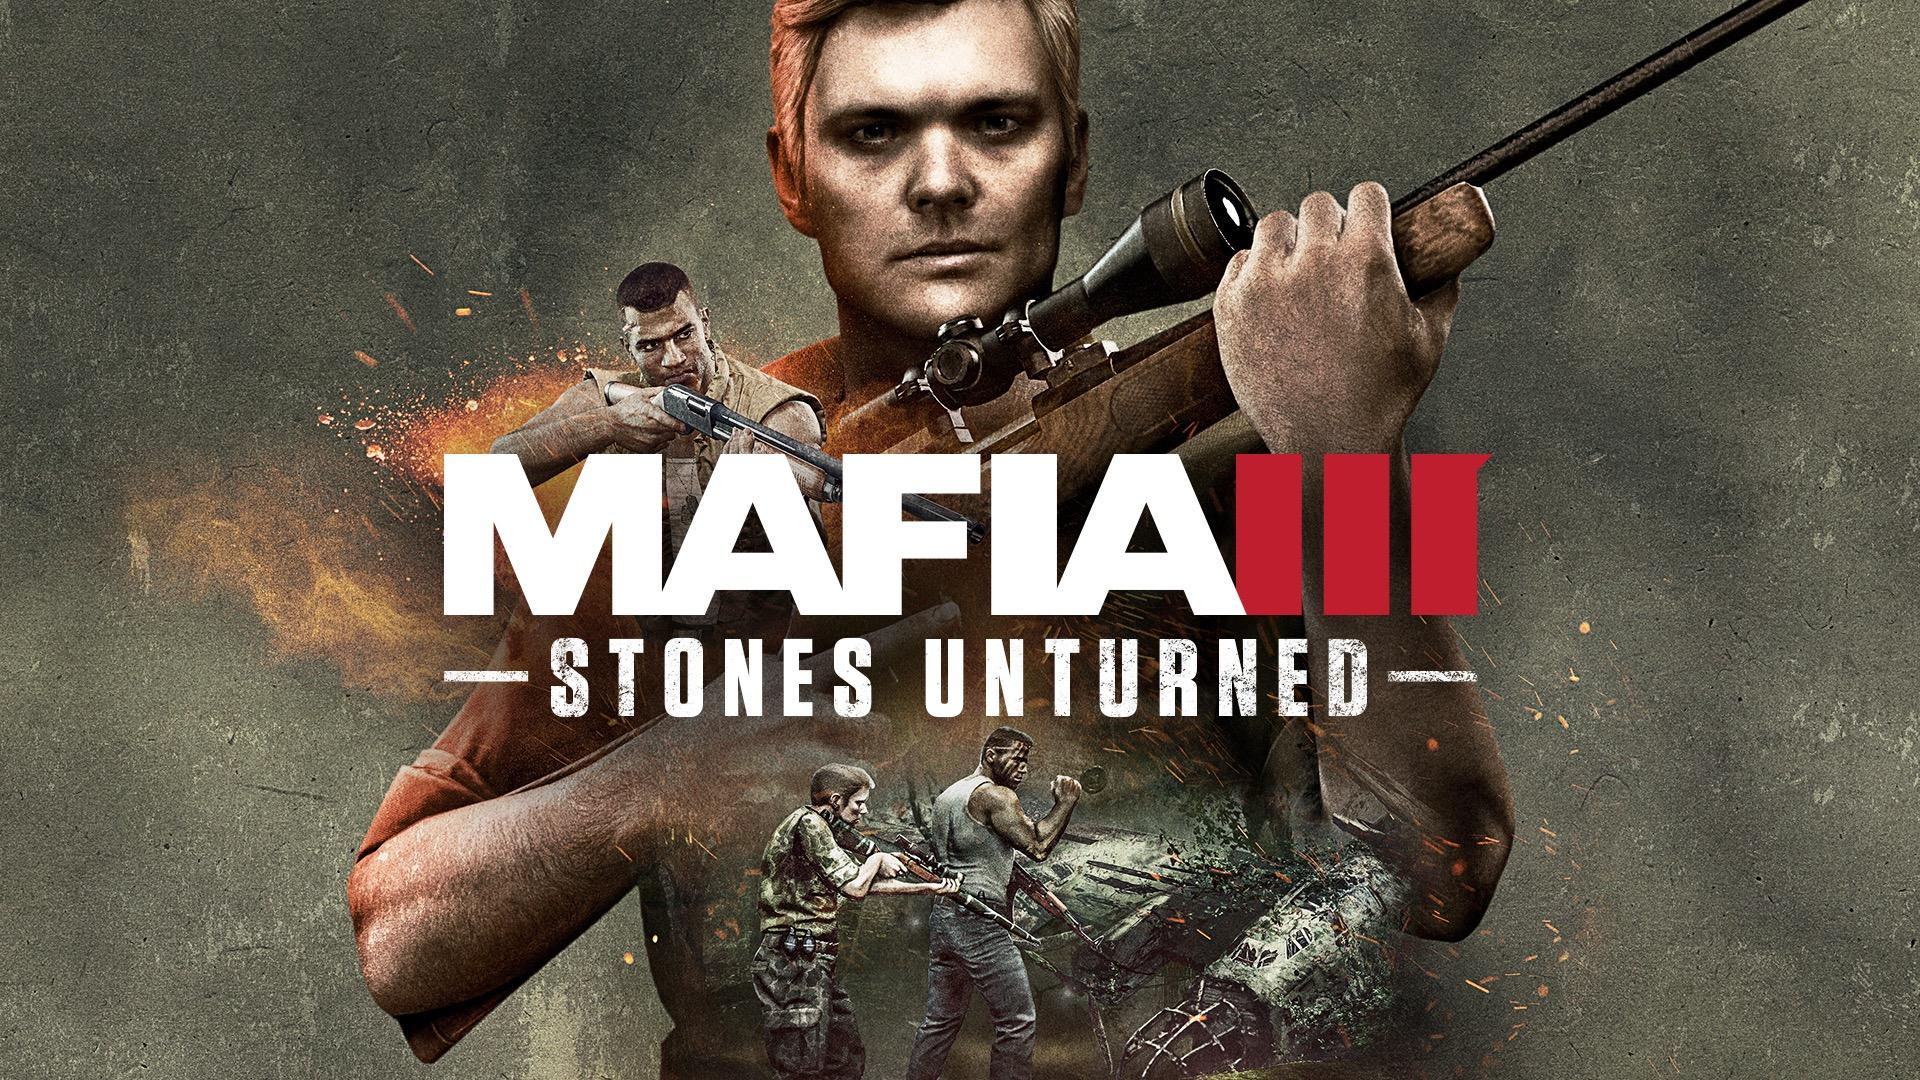 Mafia III Stones Unturned DLC has launched